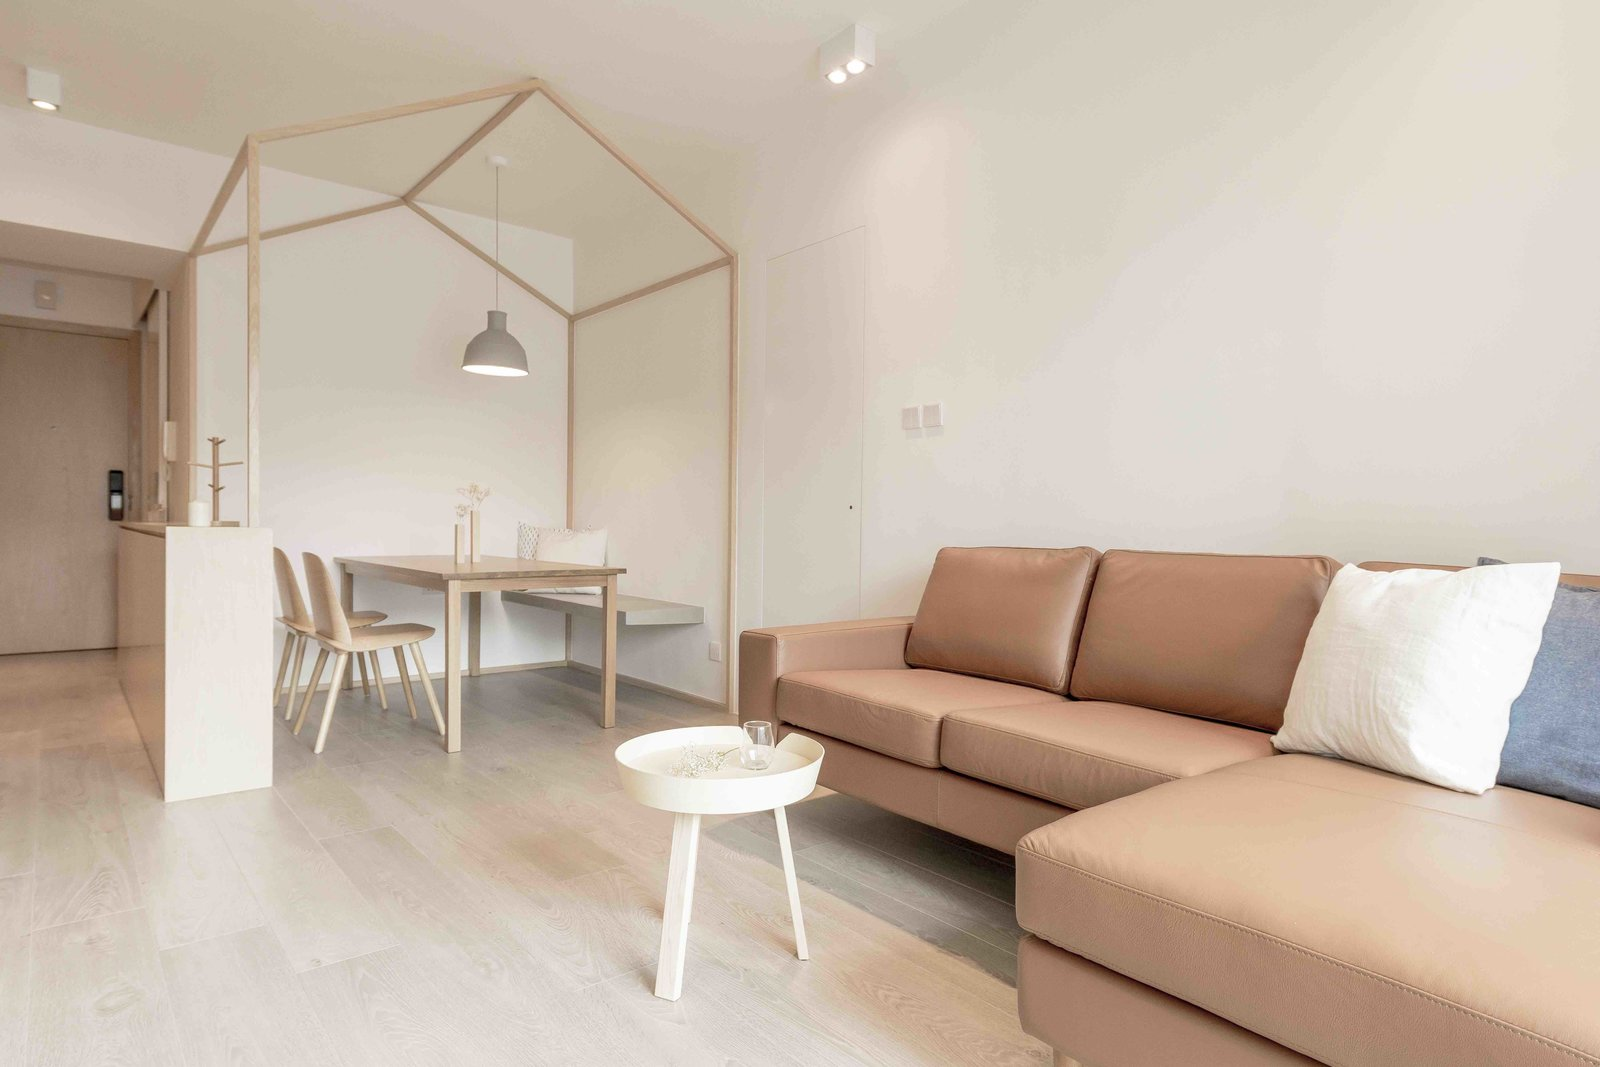 Sofa, Sectional, End Tables, Dining, Ceiling, Light Hardwood, Chair, Bench, Pendant, and Table  Best Dining Sofa Light Hardwood Photos from An Origami-Inspired Apartment in Hong Kong With Tons of Smart Storage